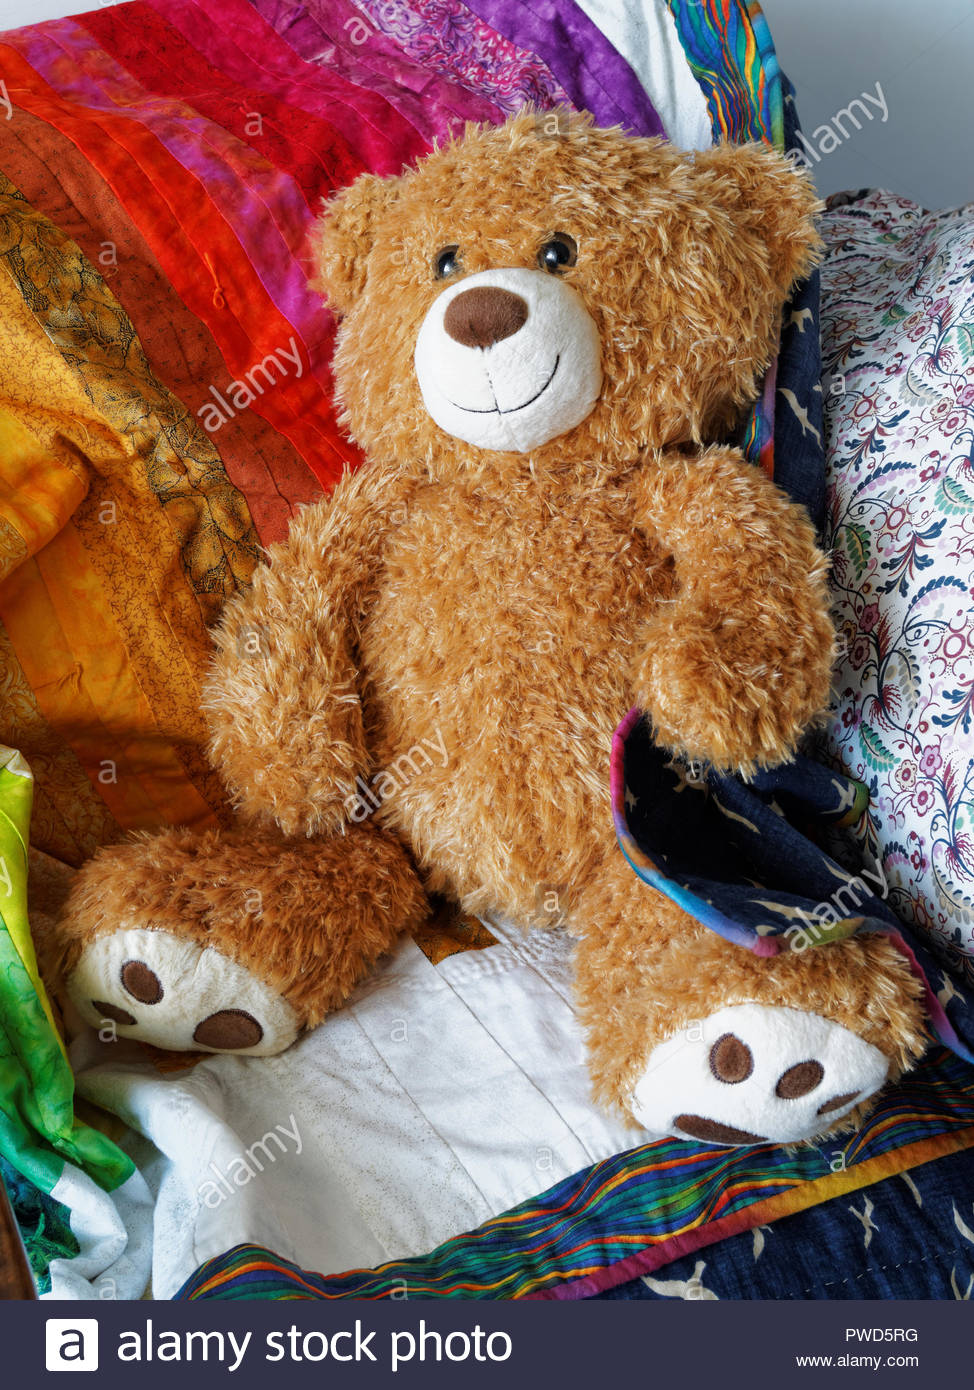 Cuddly teddy bear, with colourful blanket - Stock Image